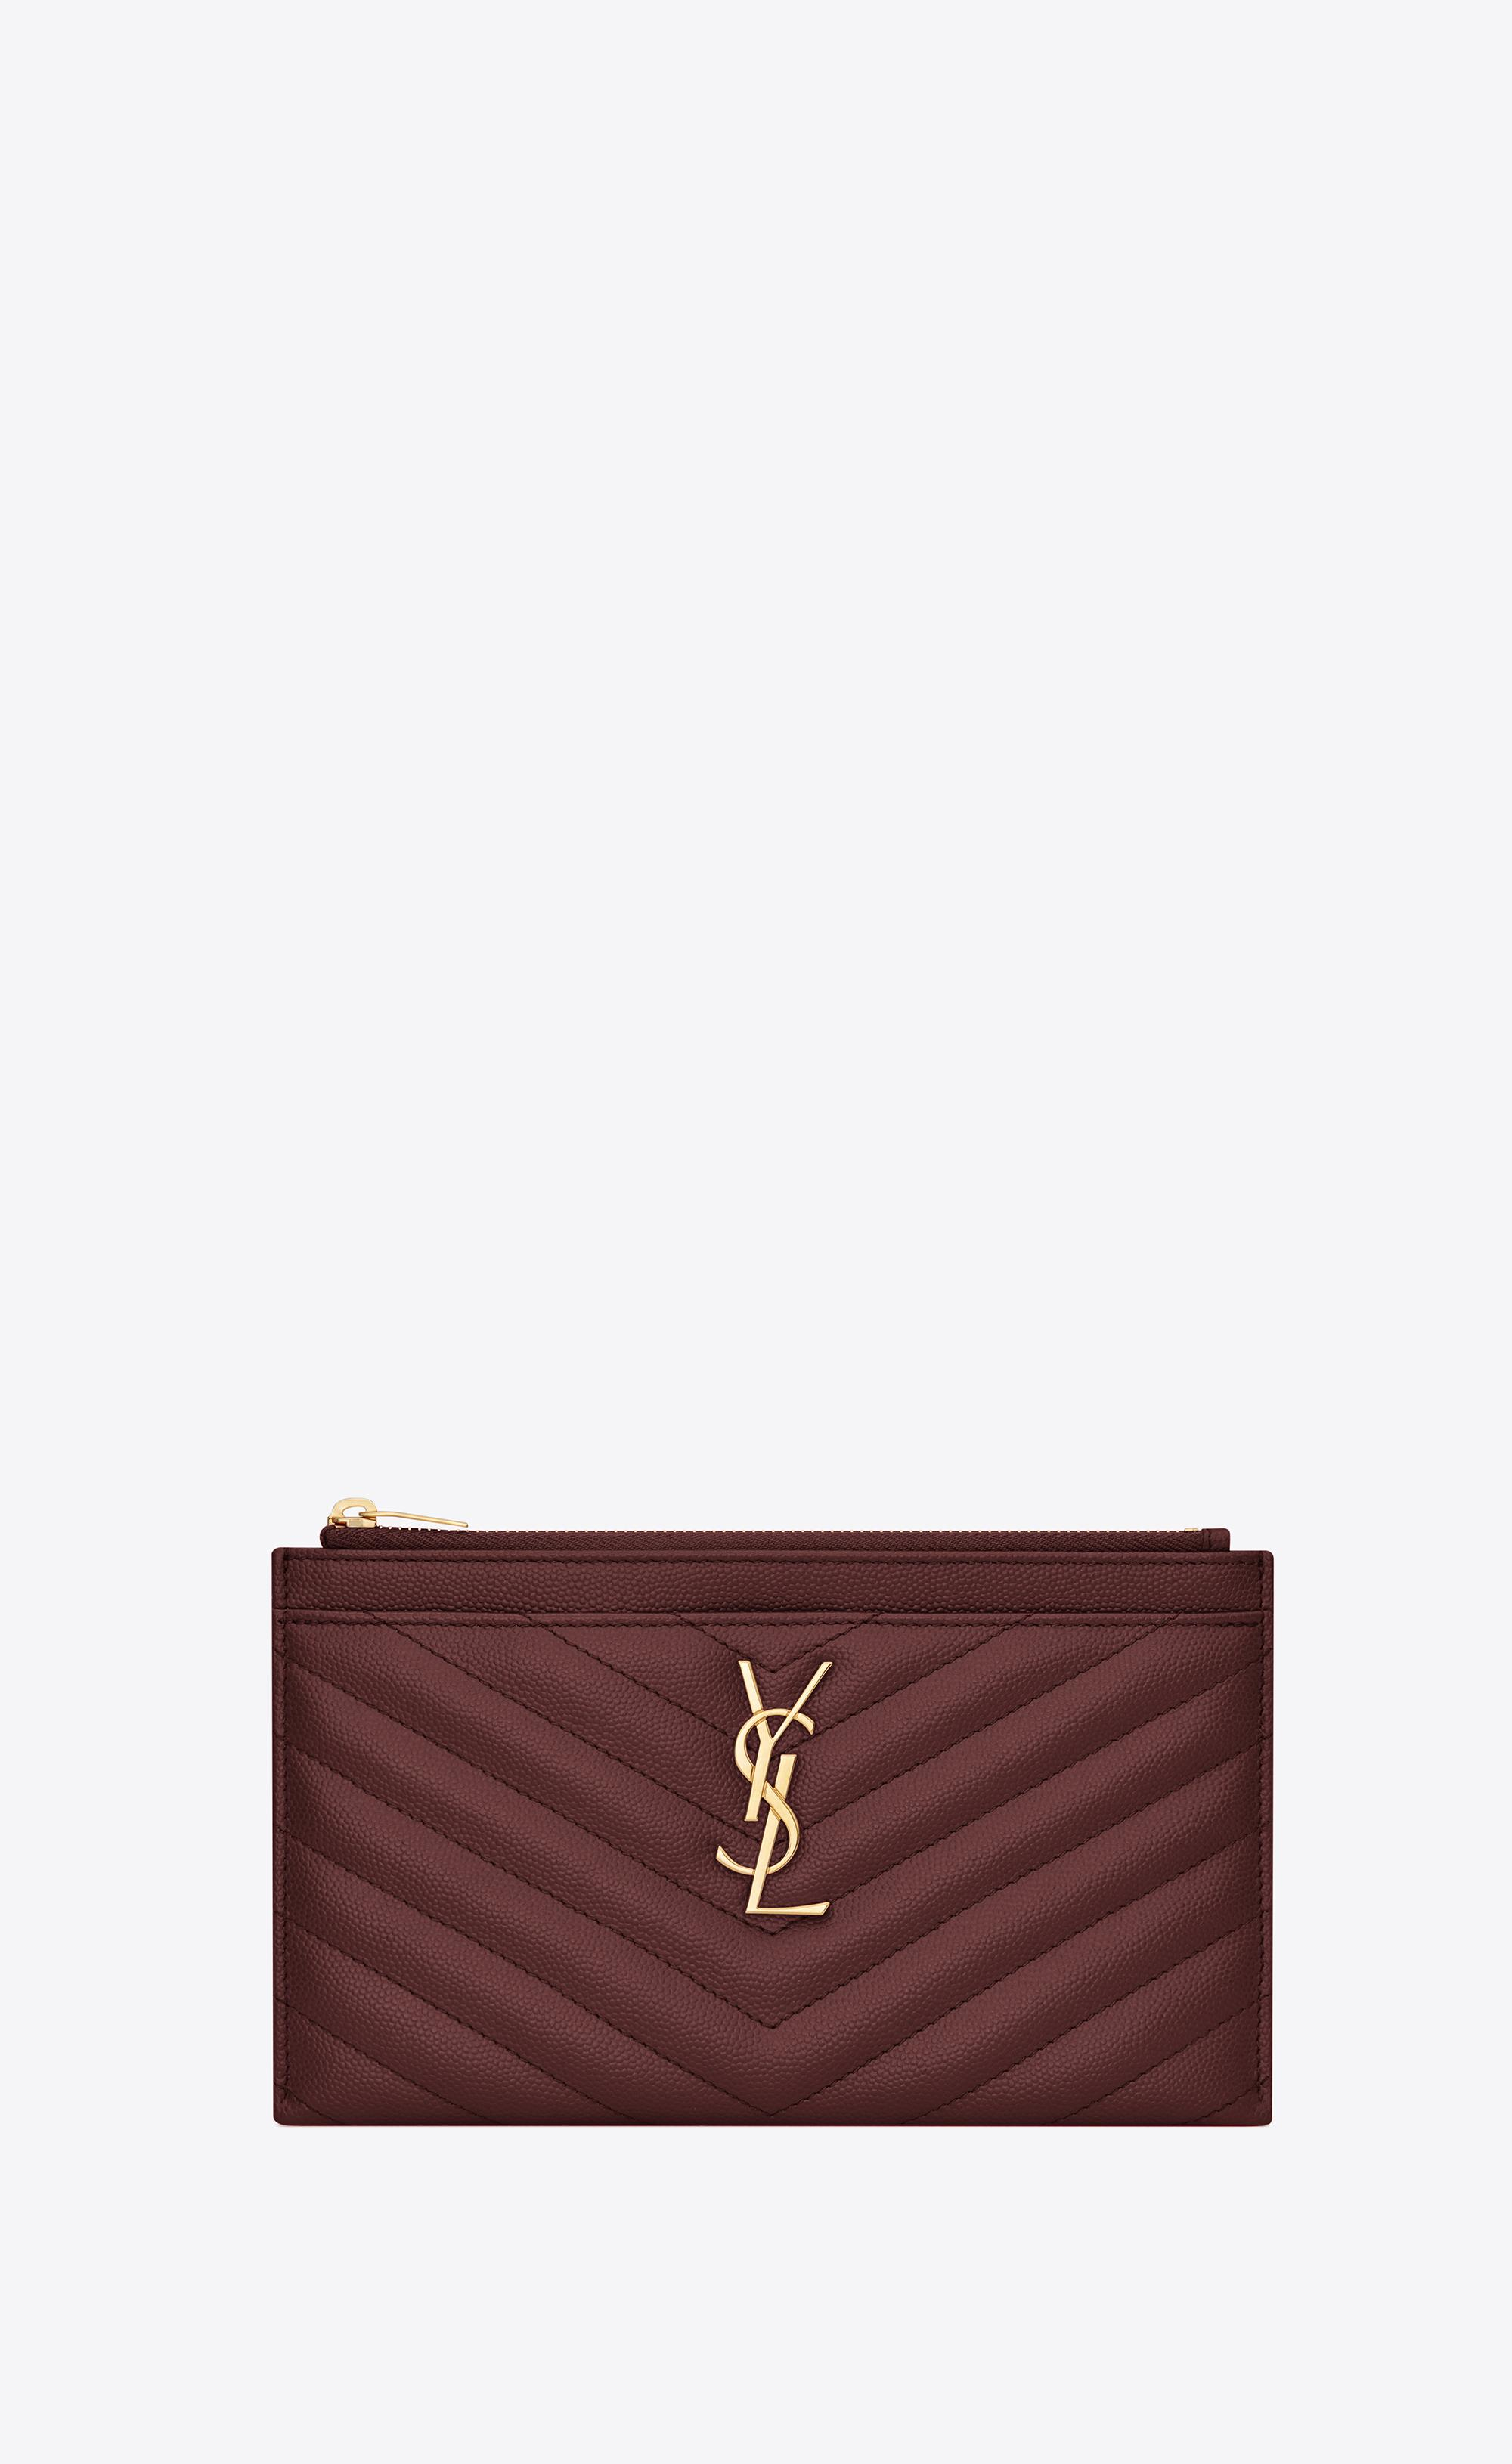 Lyst - Saint Laurent Monogram Bill Pouch in Red cd67d66ea1fba